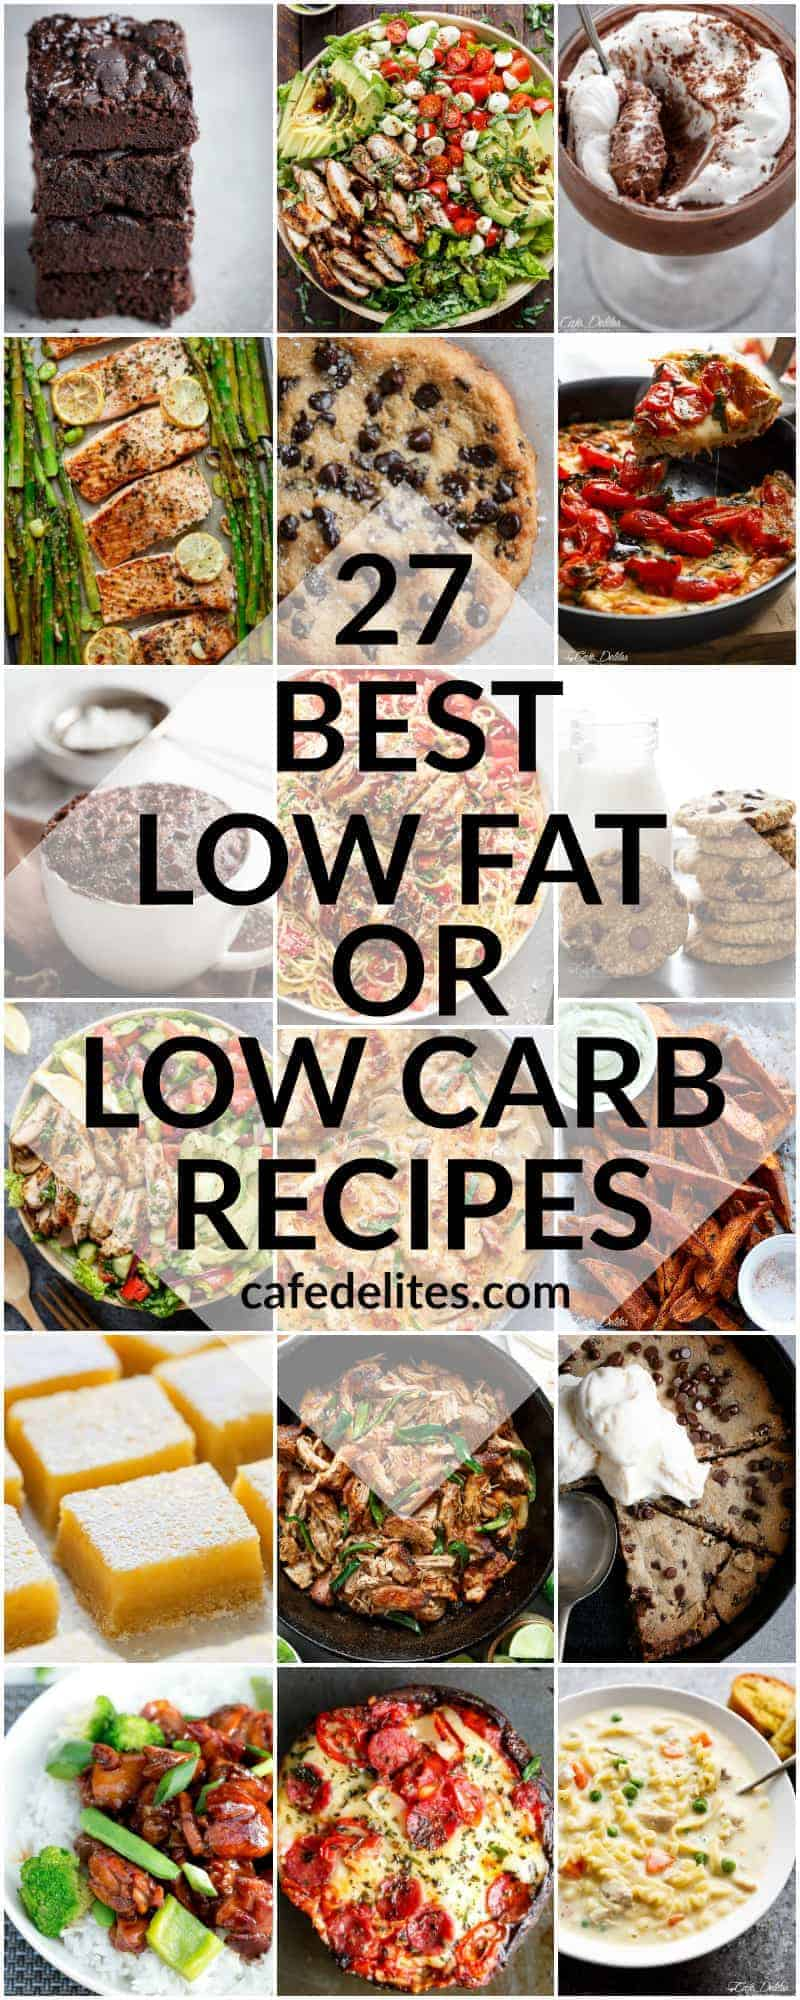 27 best low fat low carb recipes for 2017 cafe delites 27 best low fat low carb recipes for 2017 httpscafedelites forumfinder Choice Image